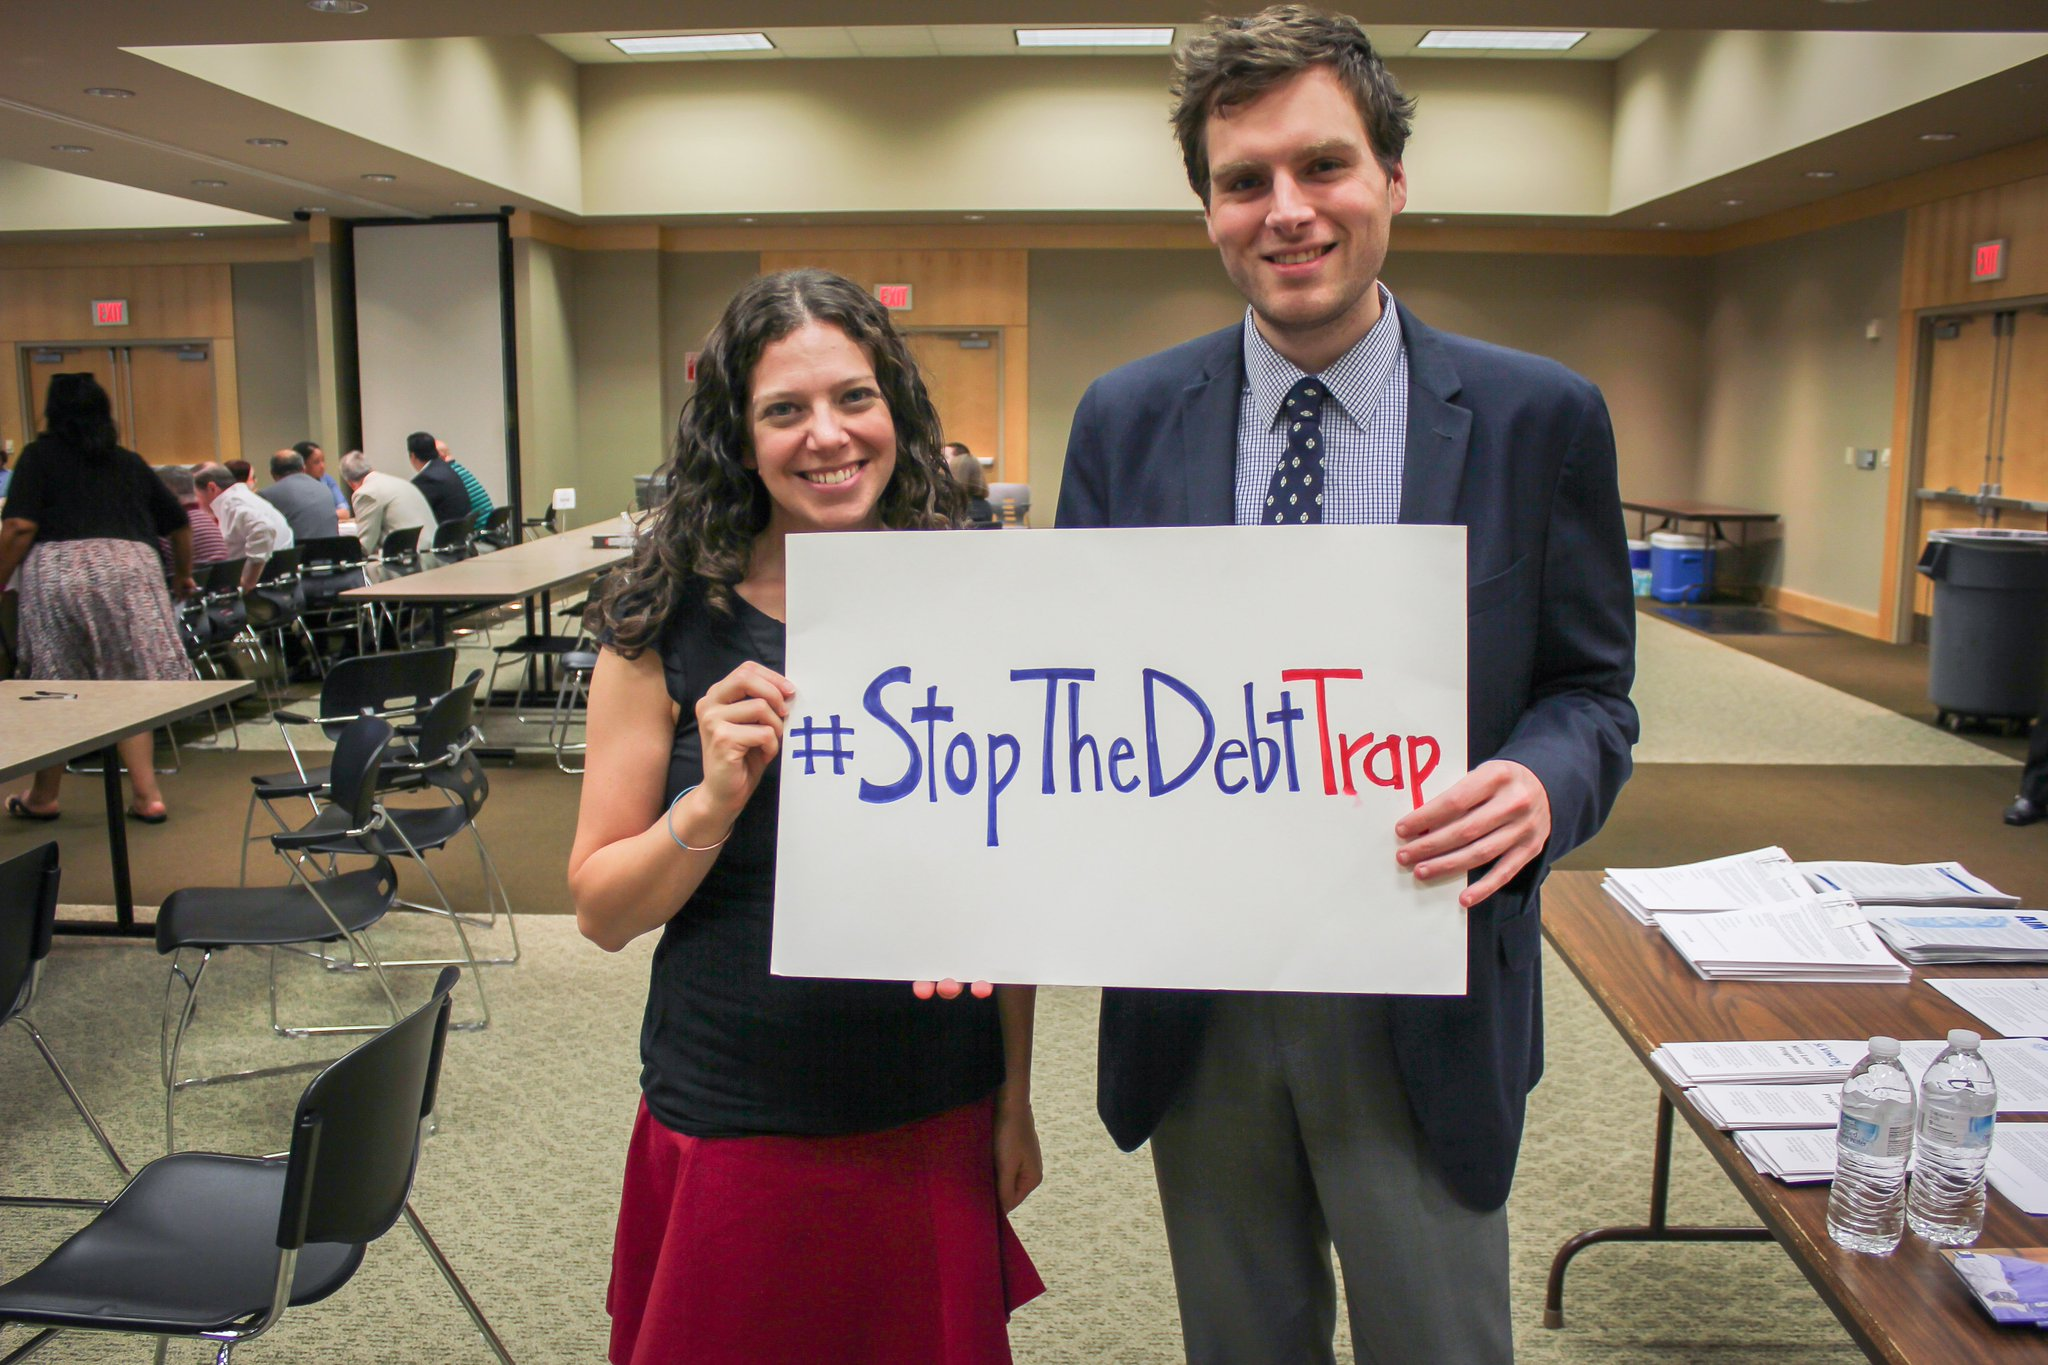 @CFPB - Dallas supports efforts to #stopthedebttrap. Please close the loopholes in the proposed #payday rules https://t.co/yVCfUCGsi3